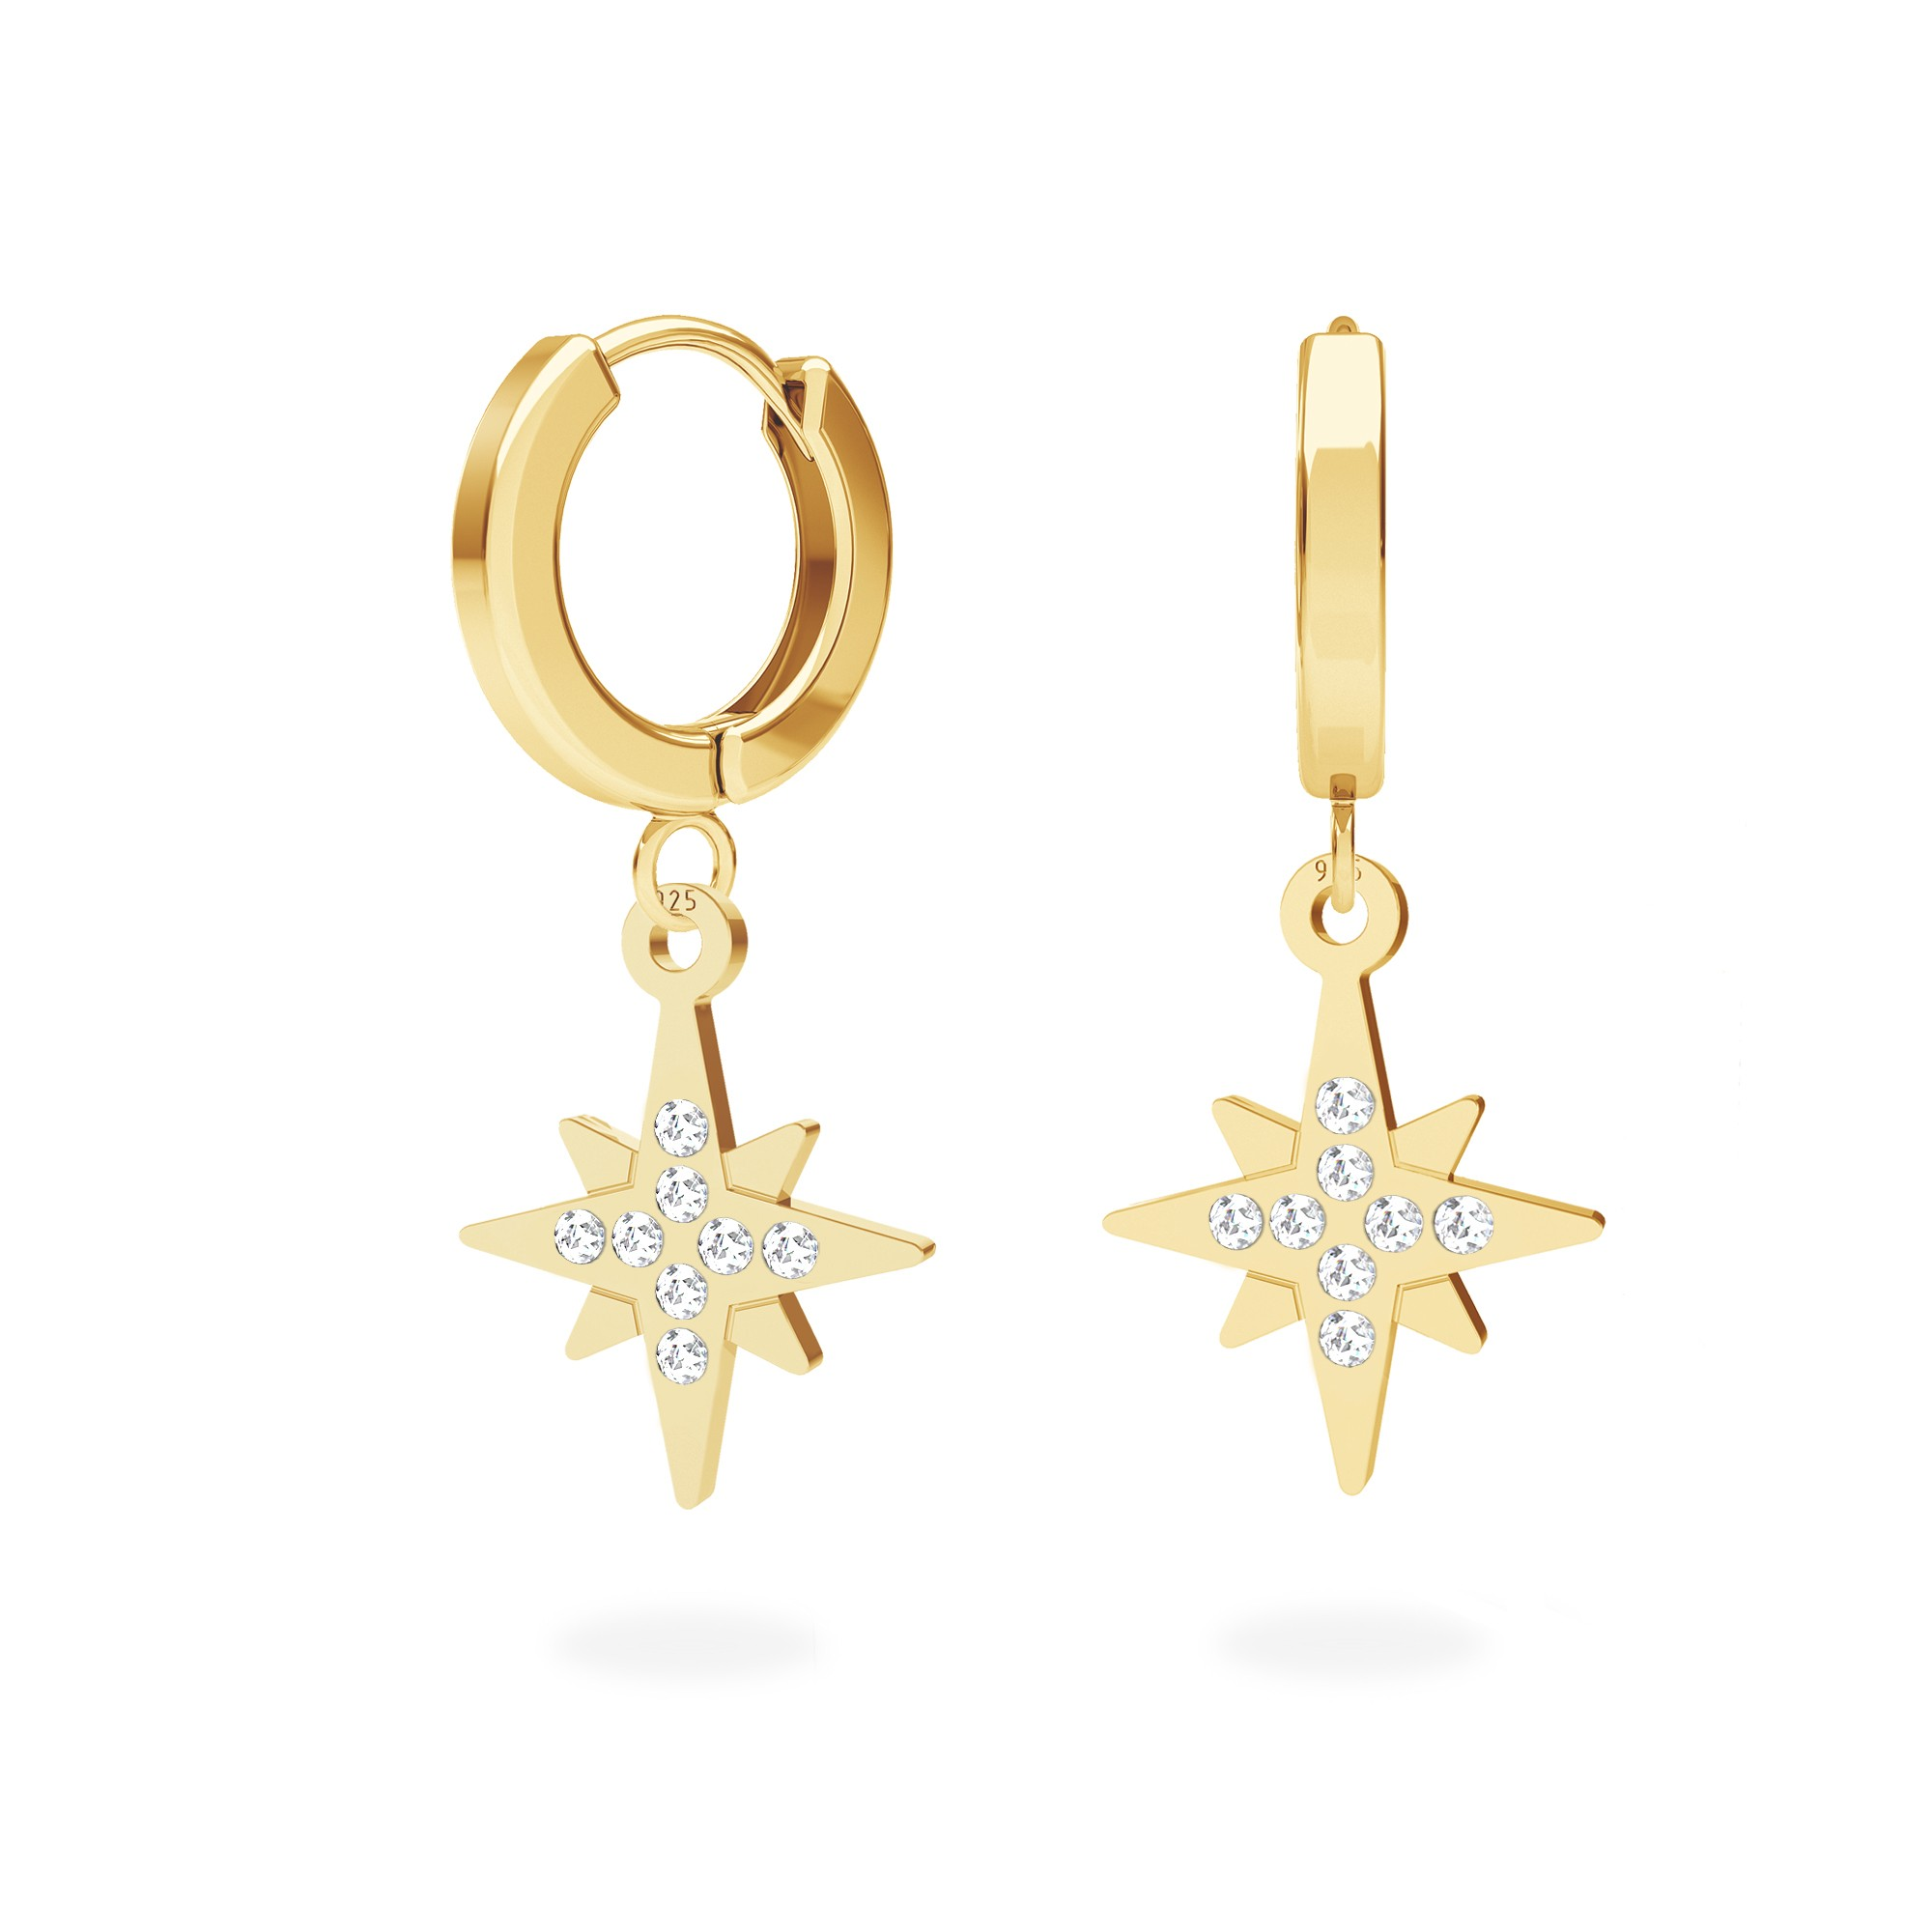 North star earrings sterling silver 925